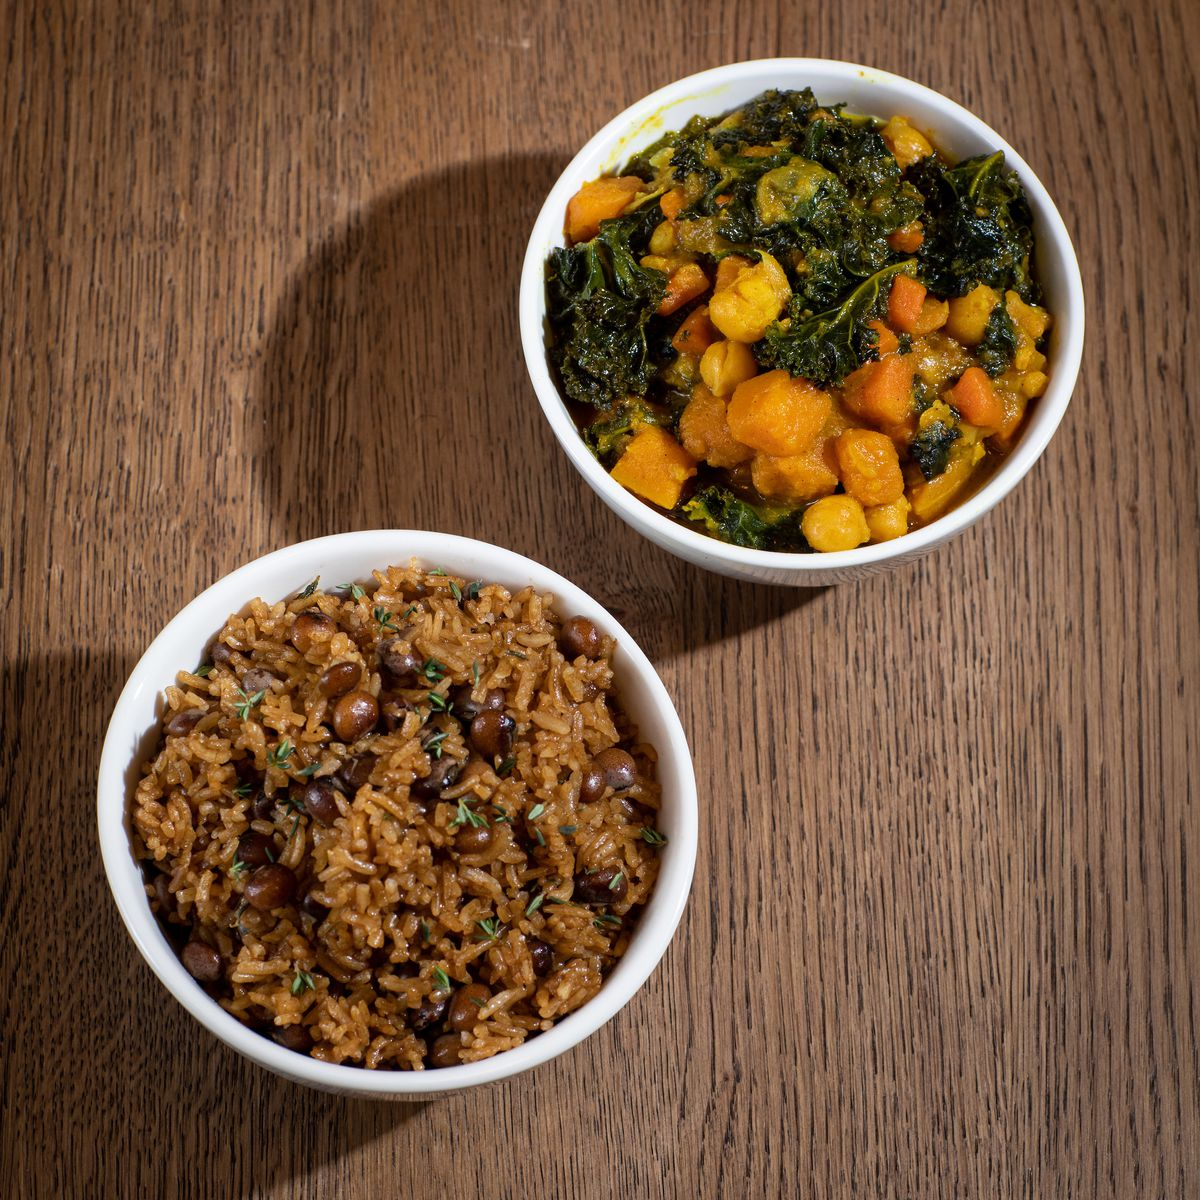 Two white bowls, one filled with brown rice and peas and the other filled with orange squash cubes and green kale, set on a wooden table